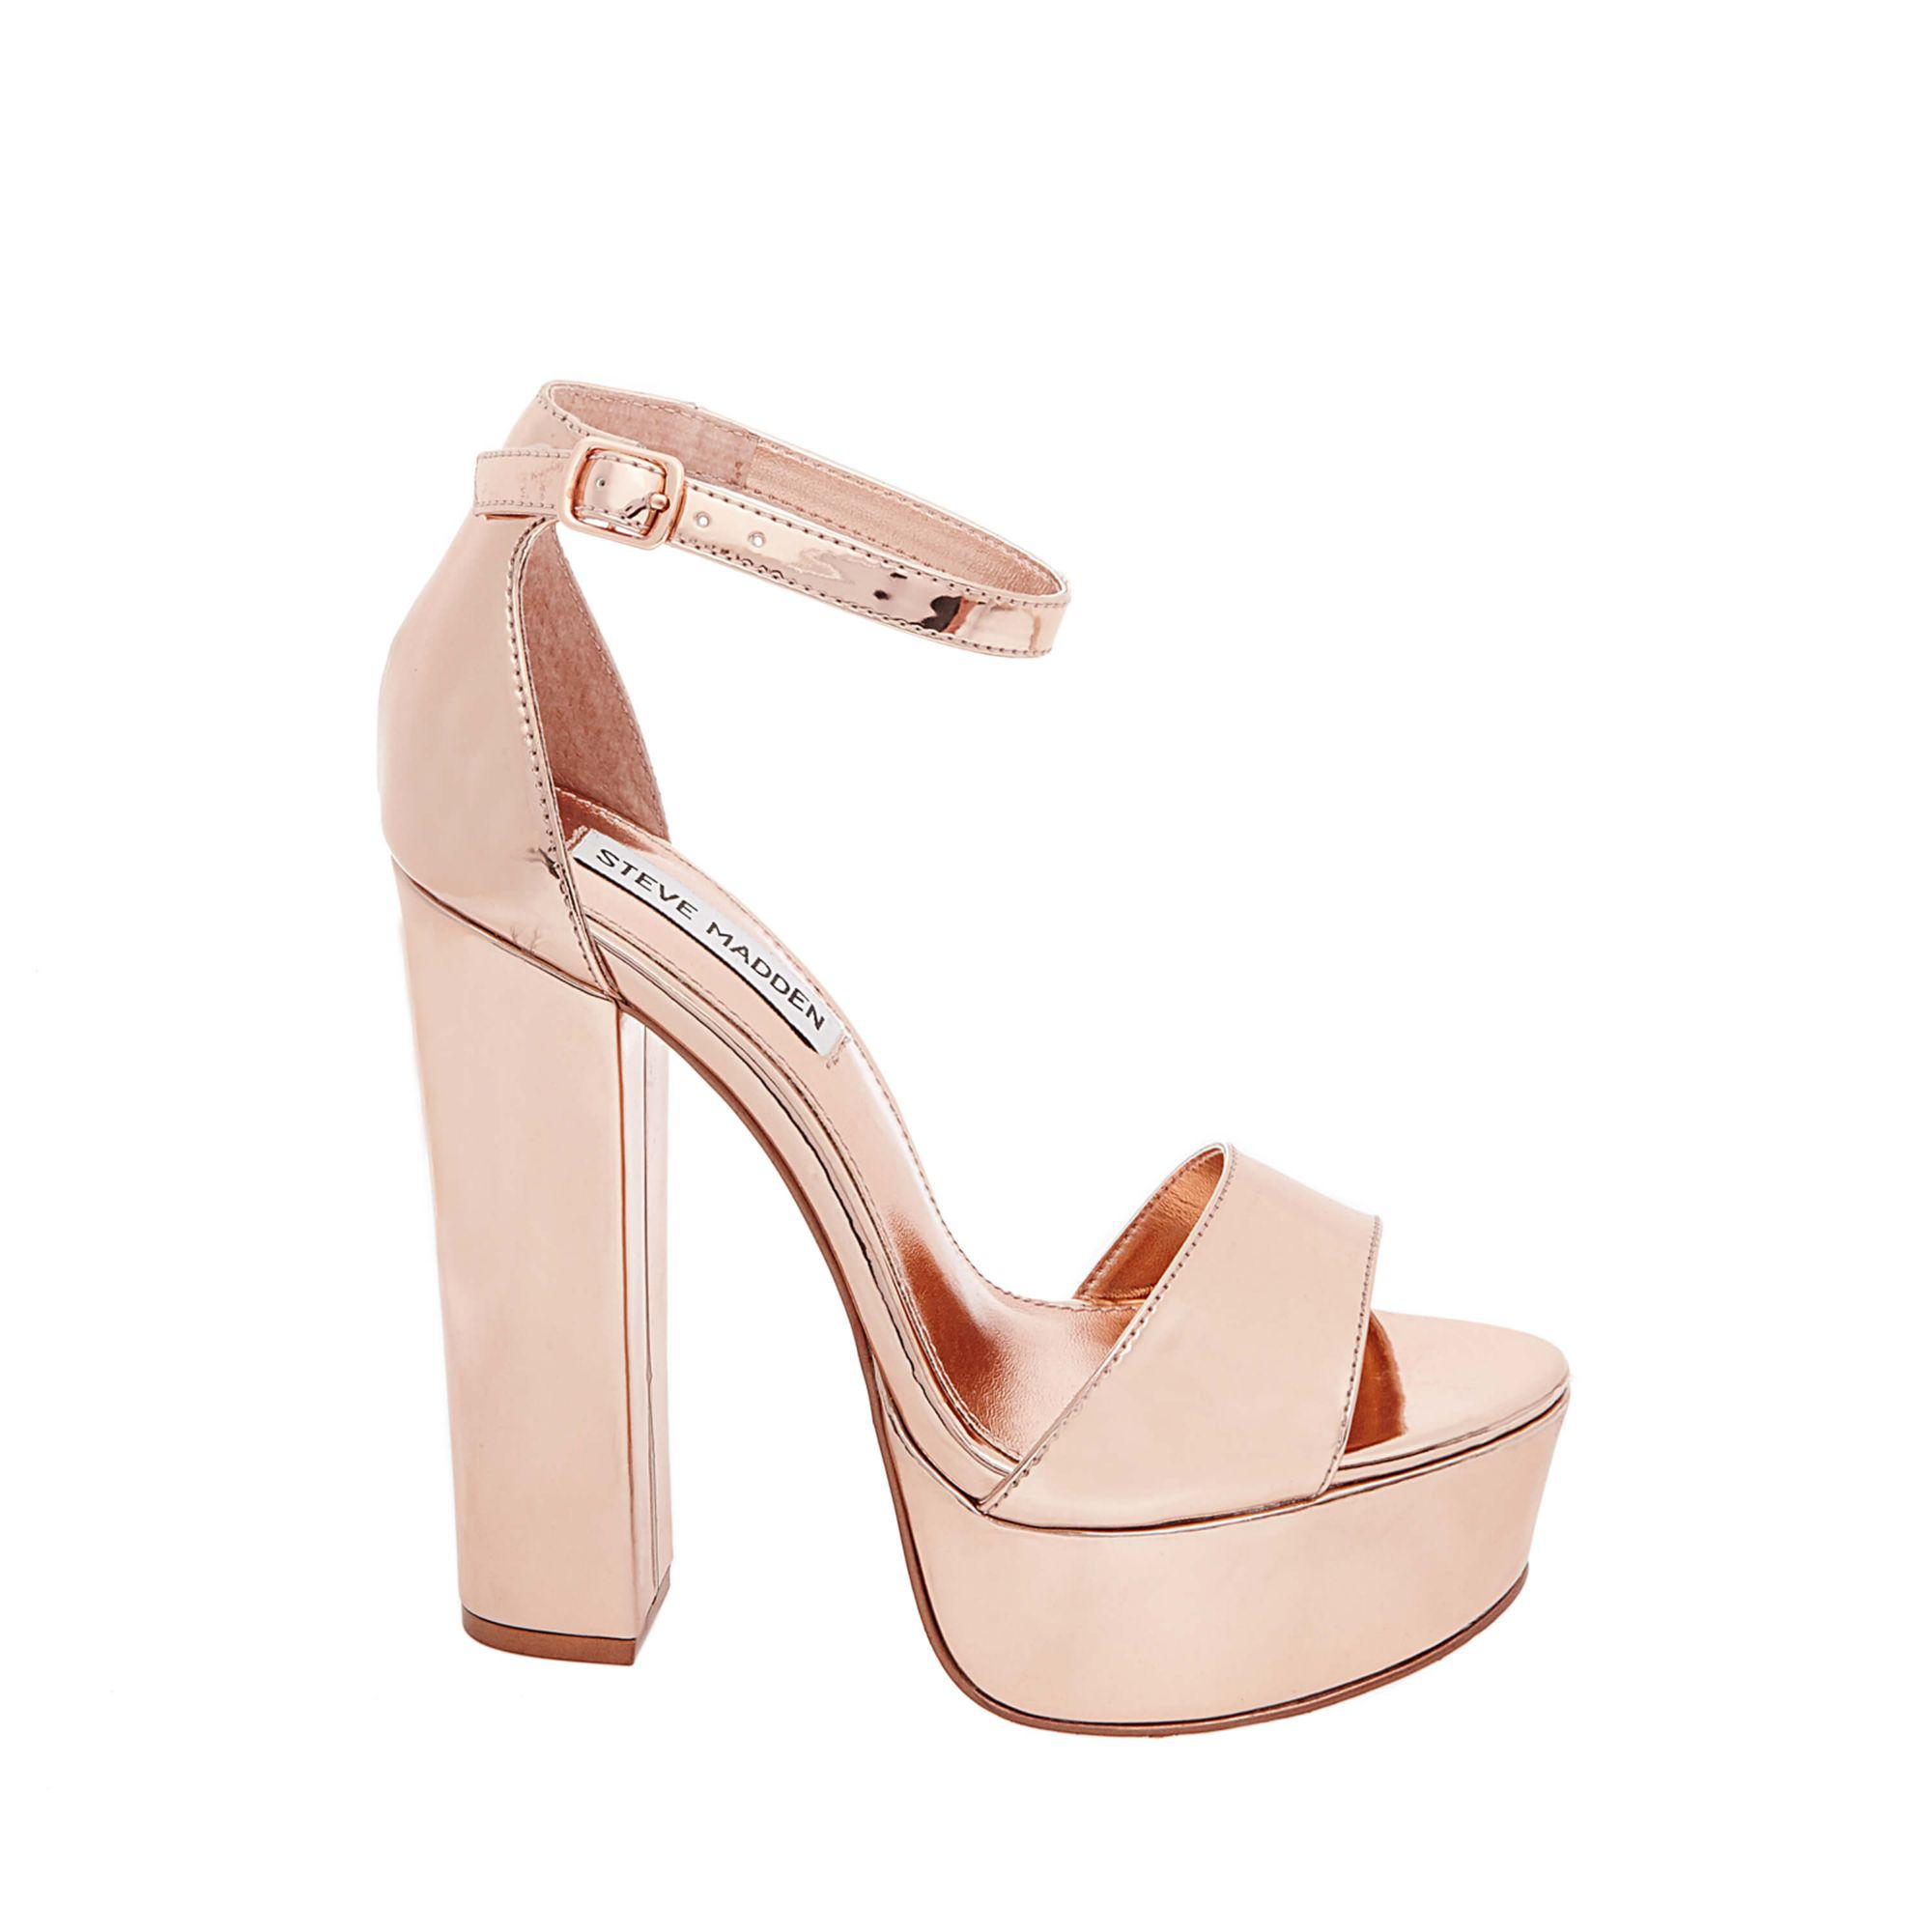 d0d68a91c27 Lyst - Steve Madden Gonzo in Pink